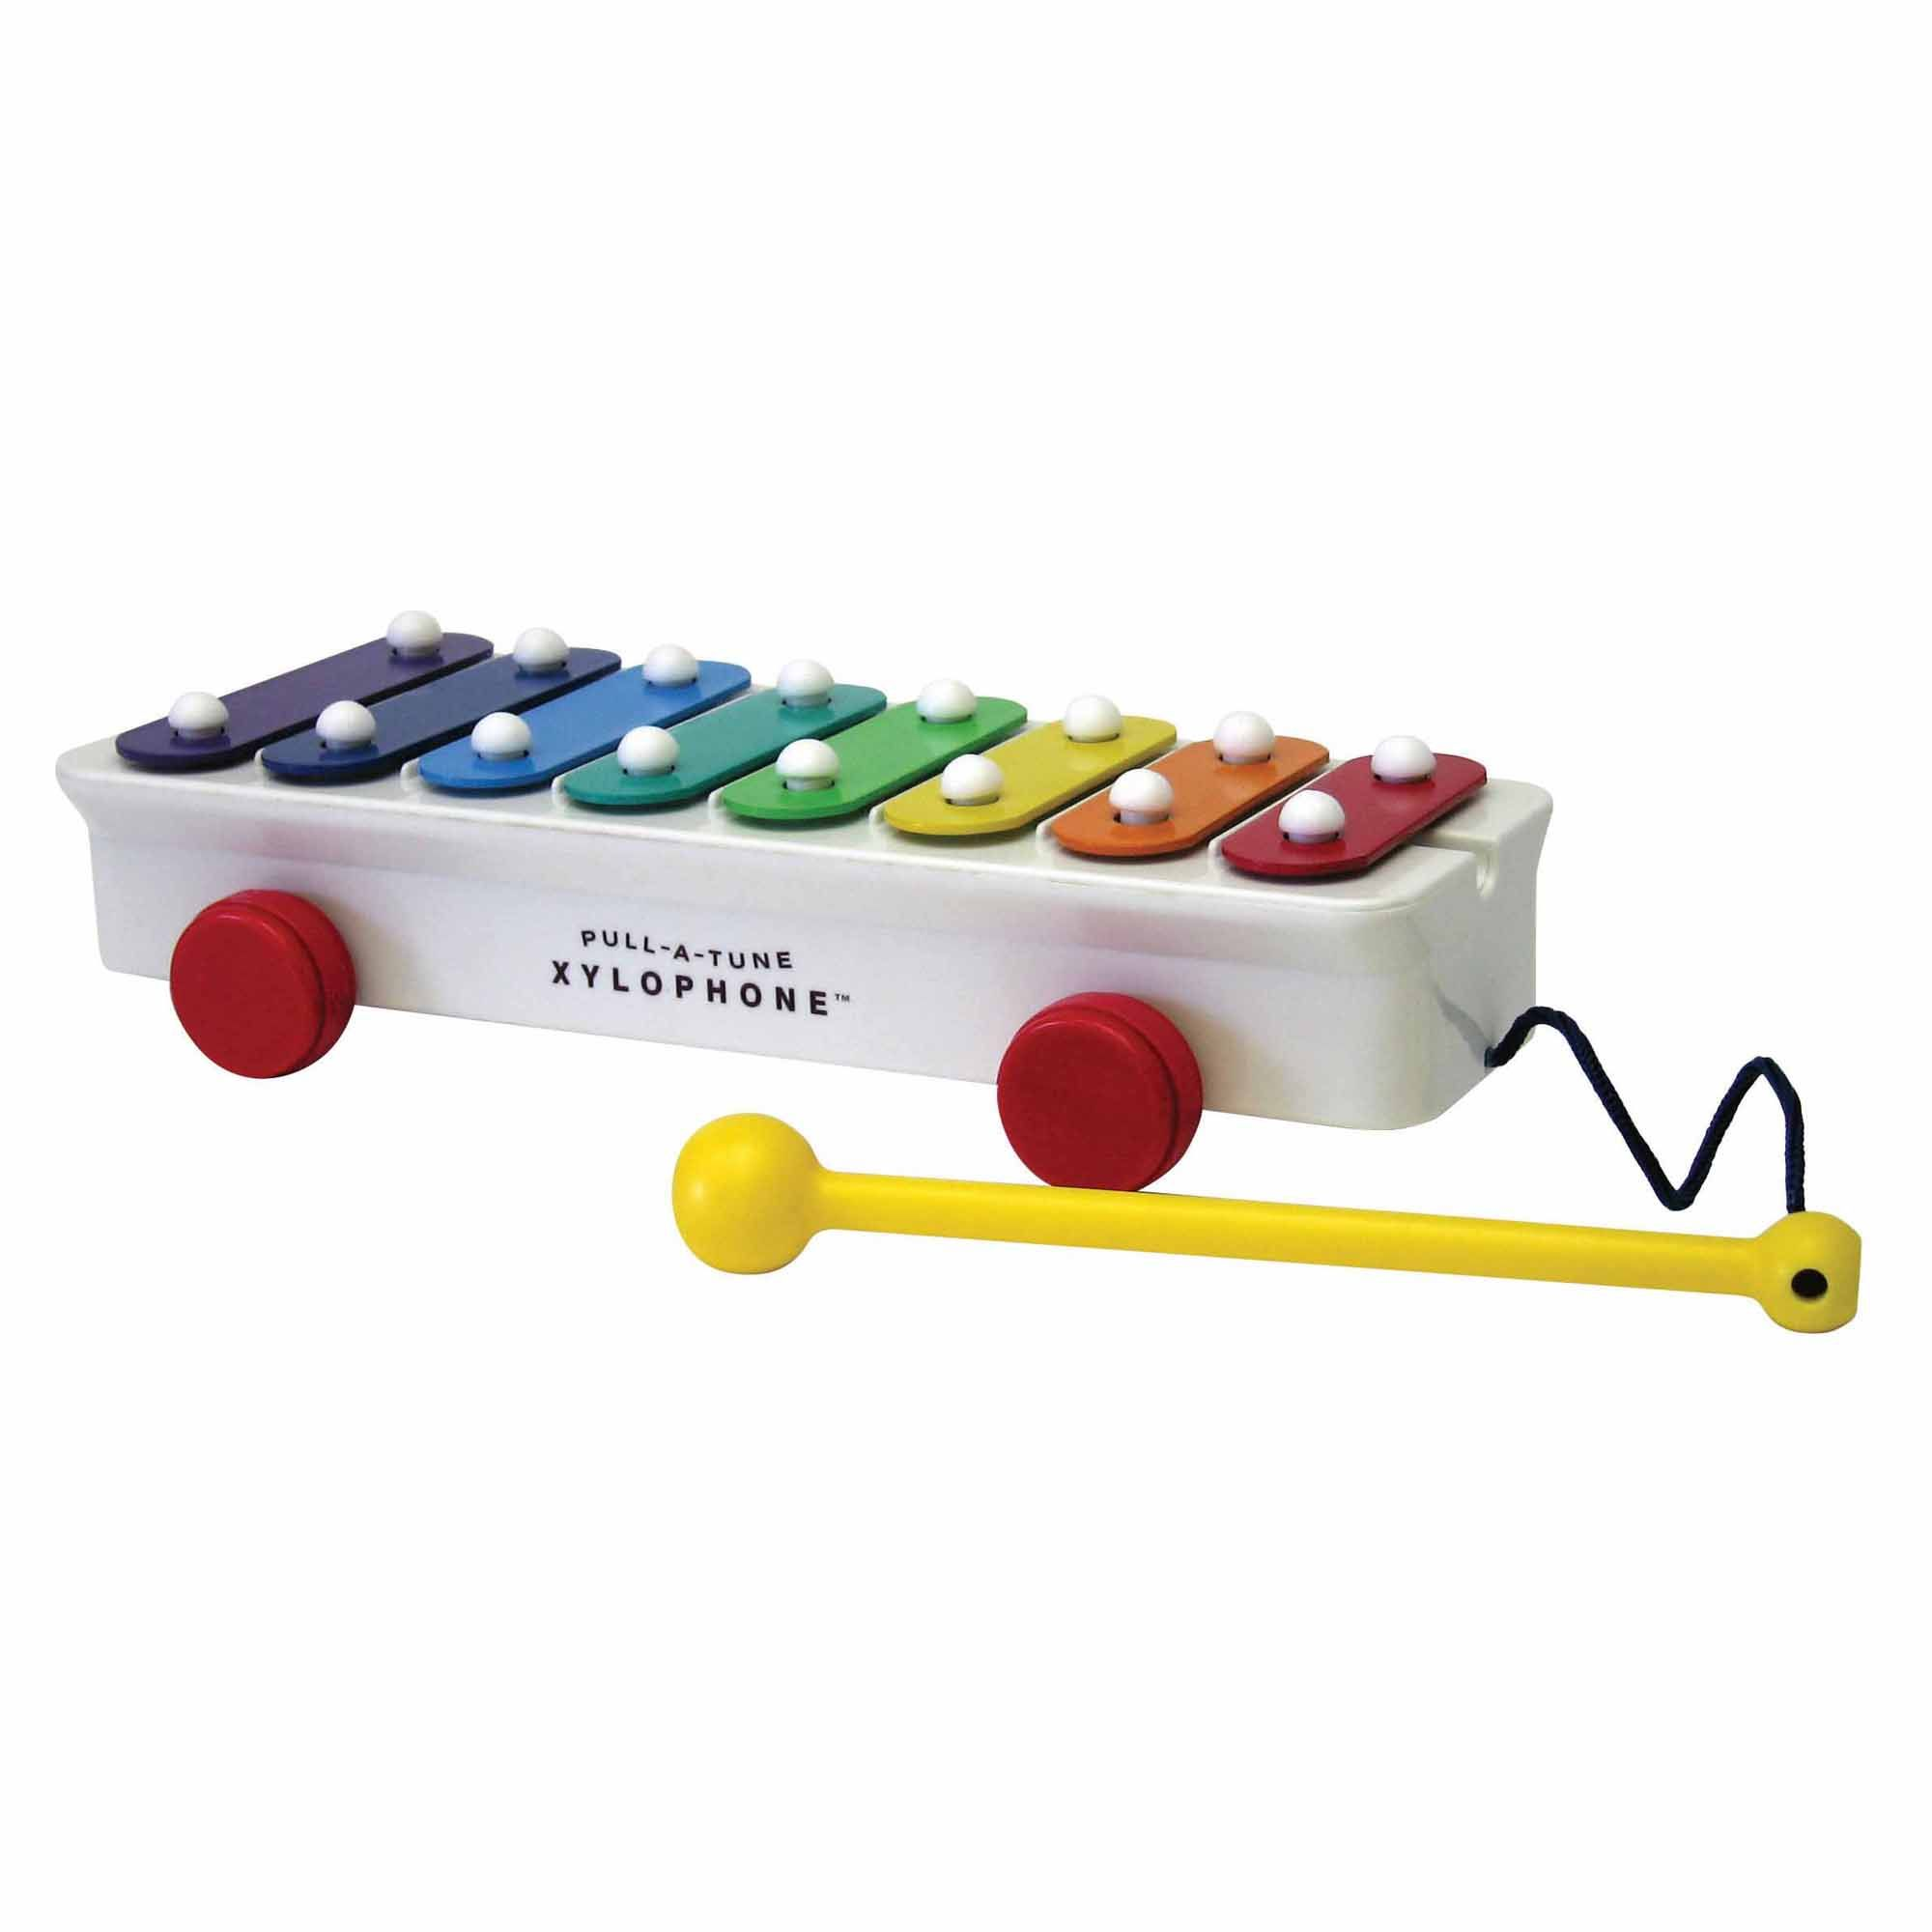 Play a colorful tune with the colorful Fischer Price Pull A Tune